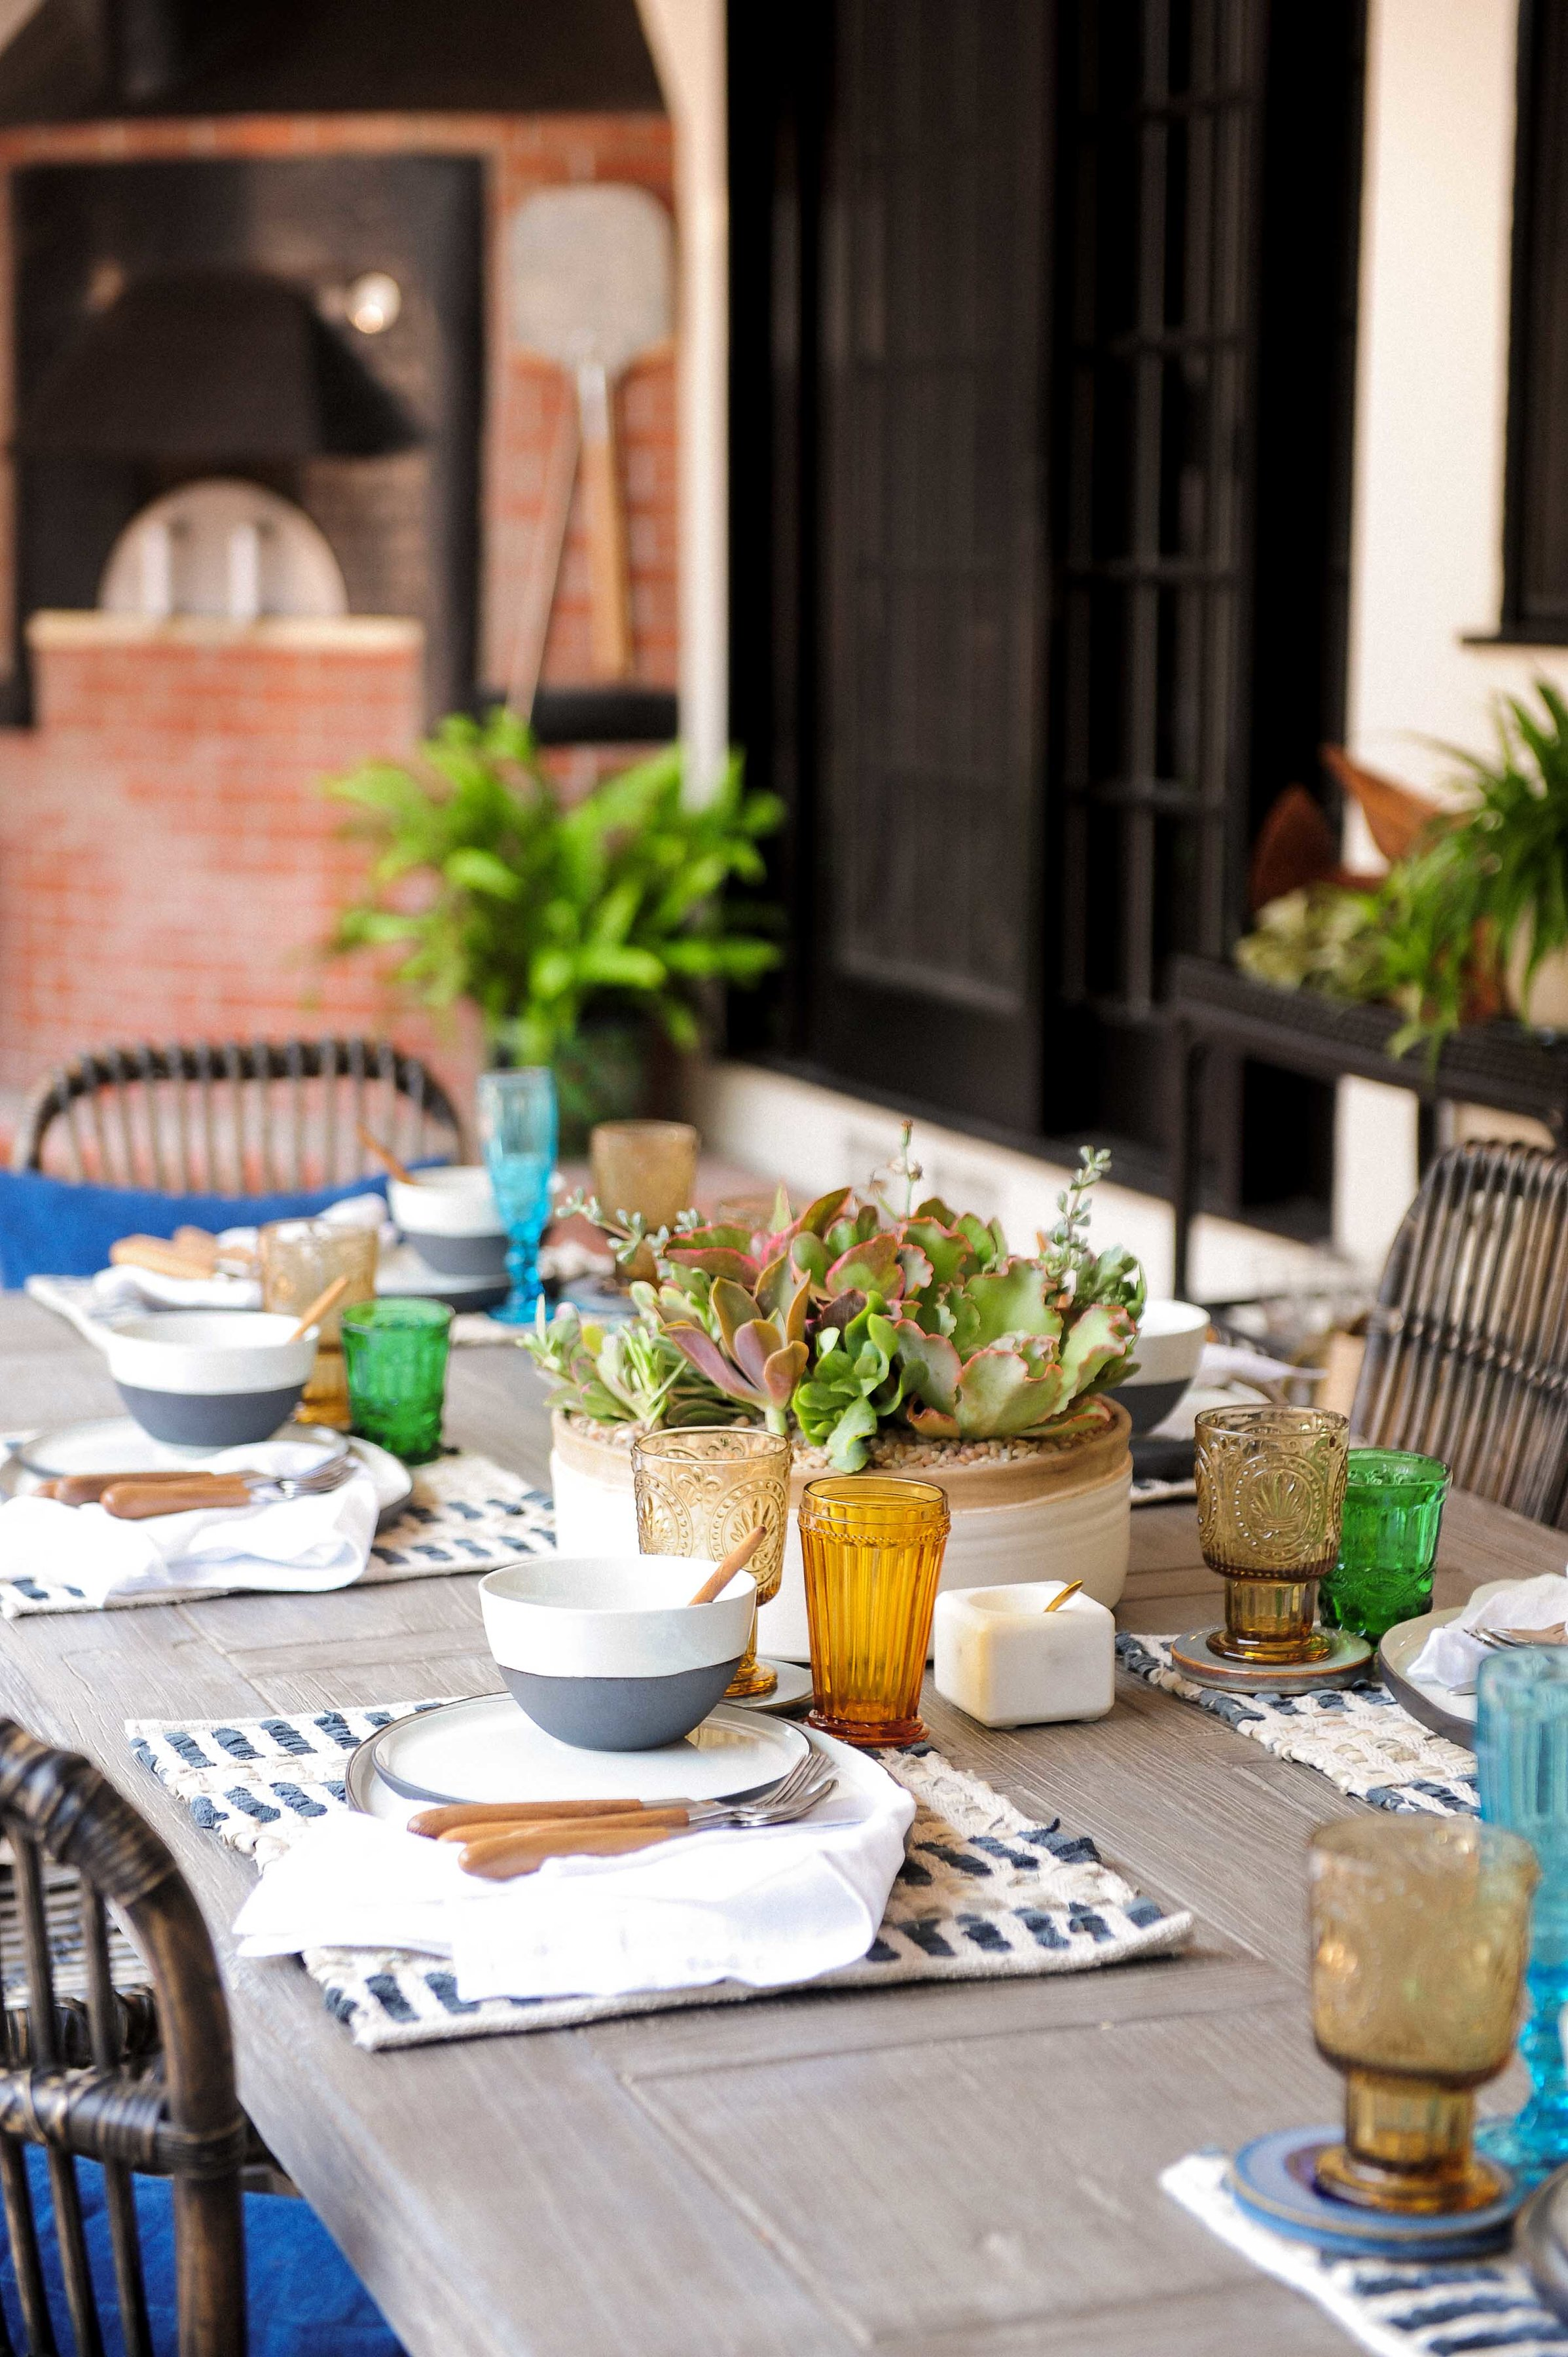 Pictured above is Punch's outdoor table styled with items from our pantry section at Rolling Greens. We love this summery eclectic al fresco vibe!!